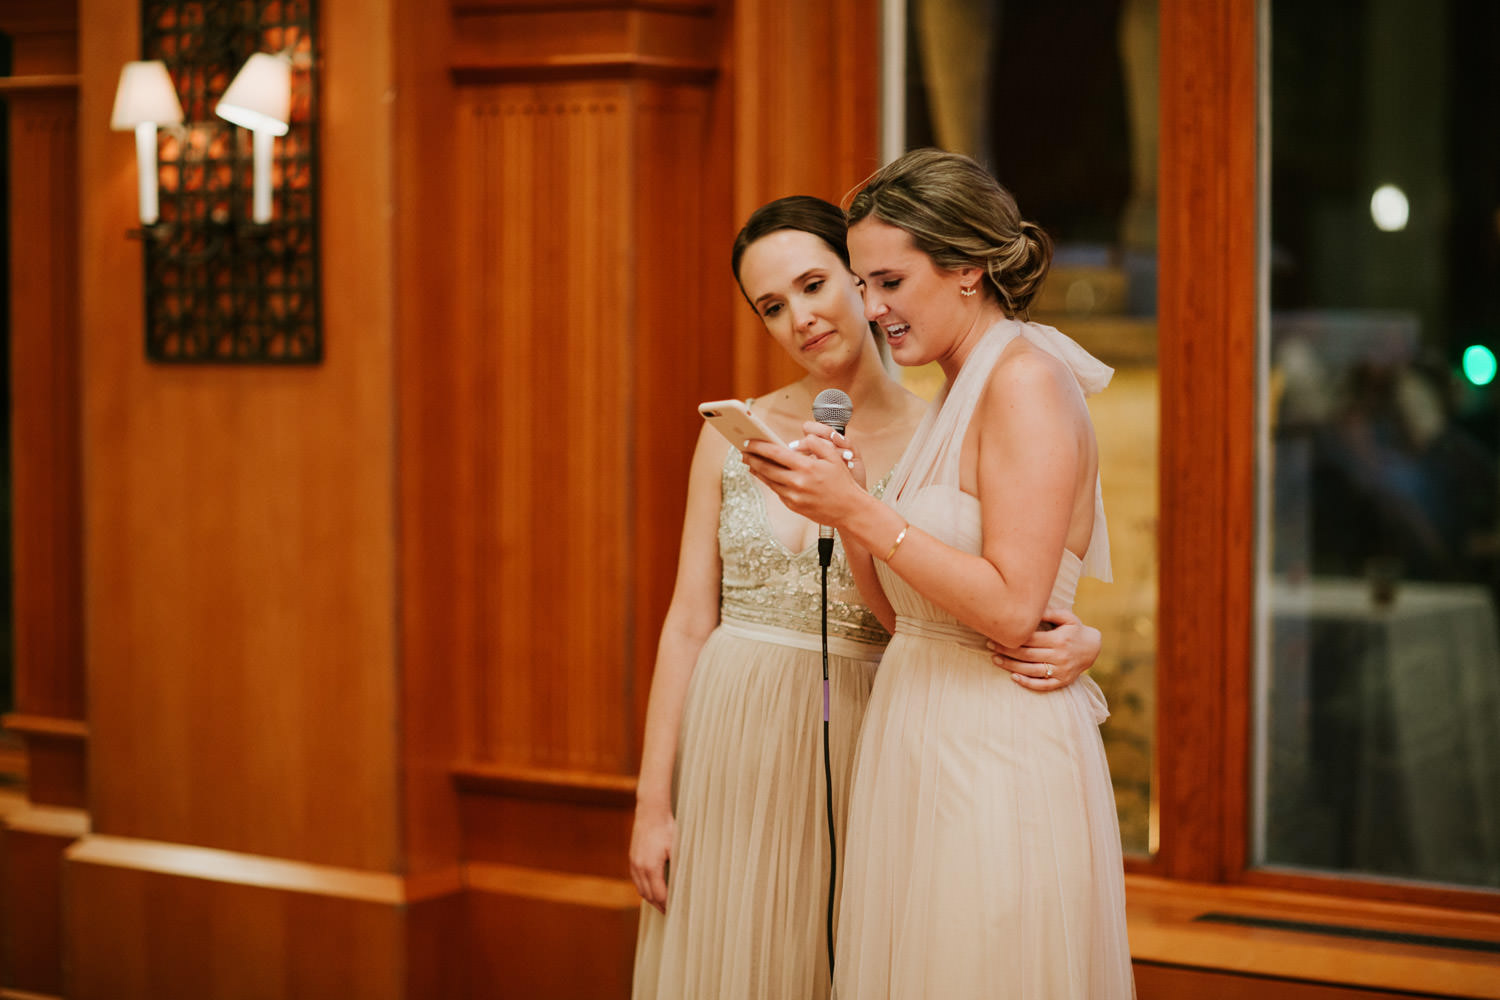 Picture of the bride embracing the maid of honor during emotional part of the speech. Photograph taken by Mark Trela